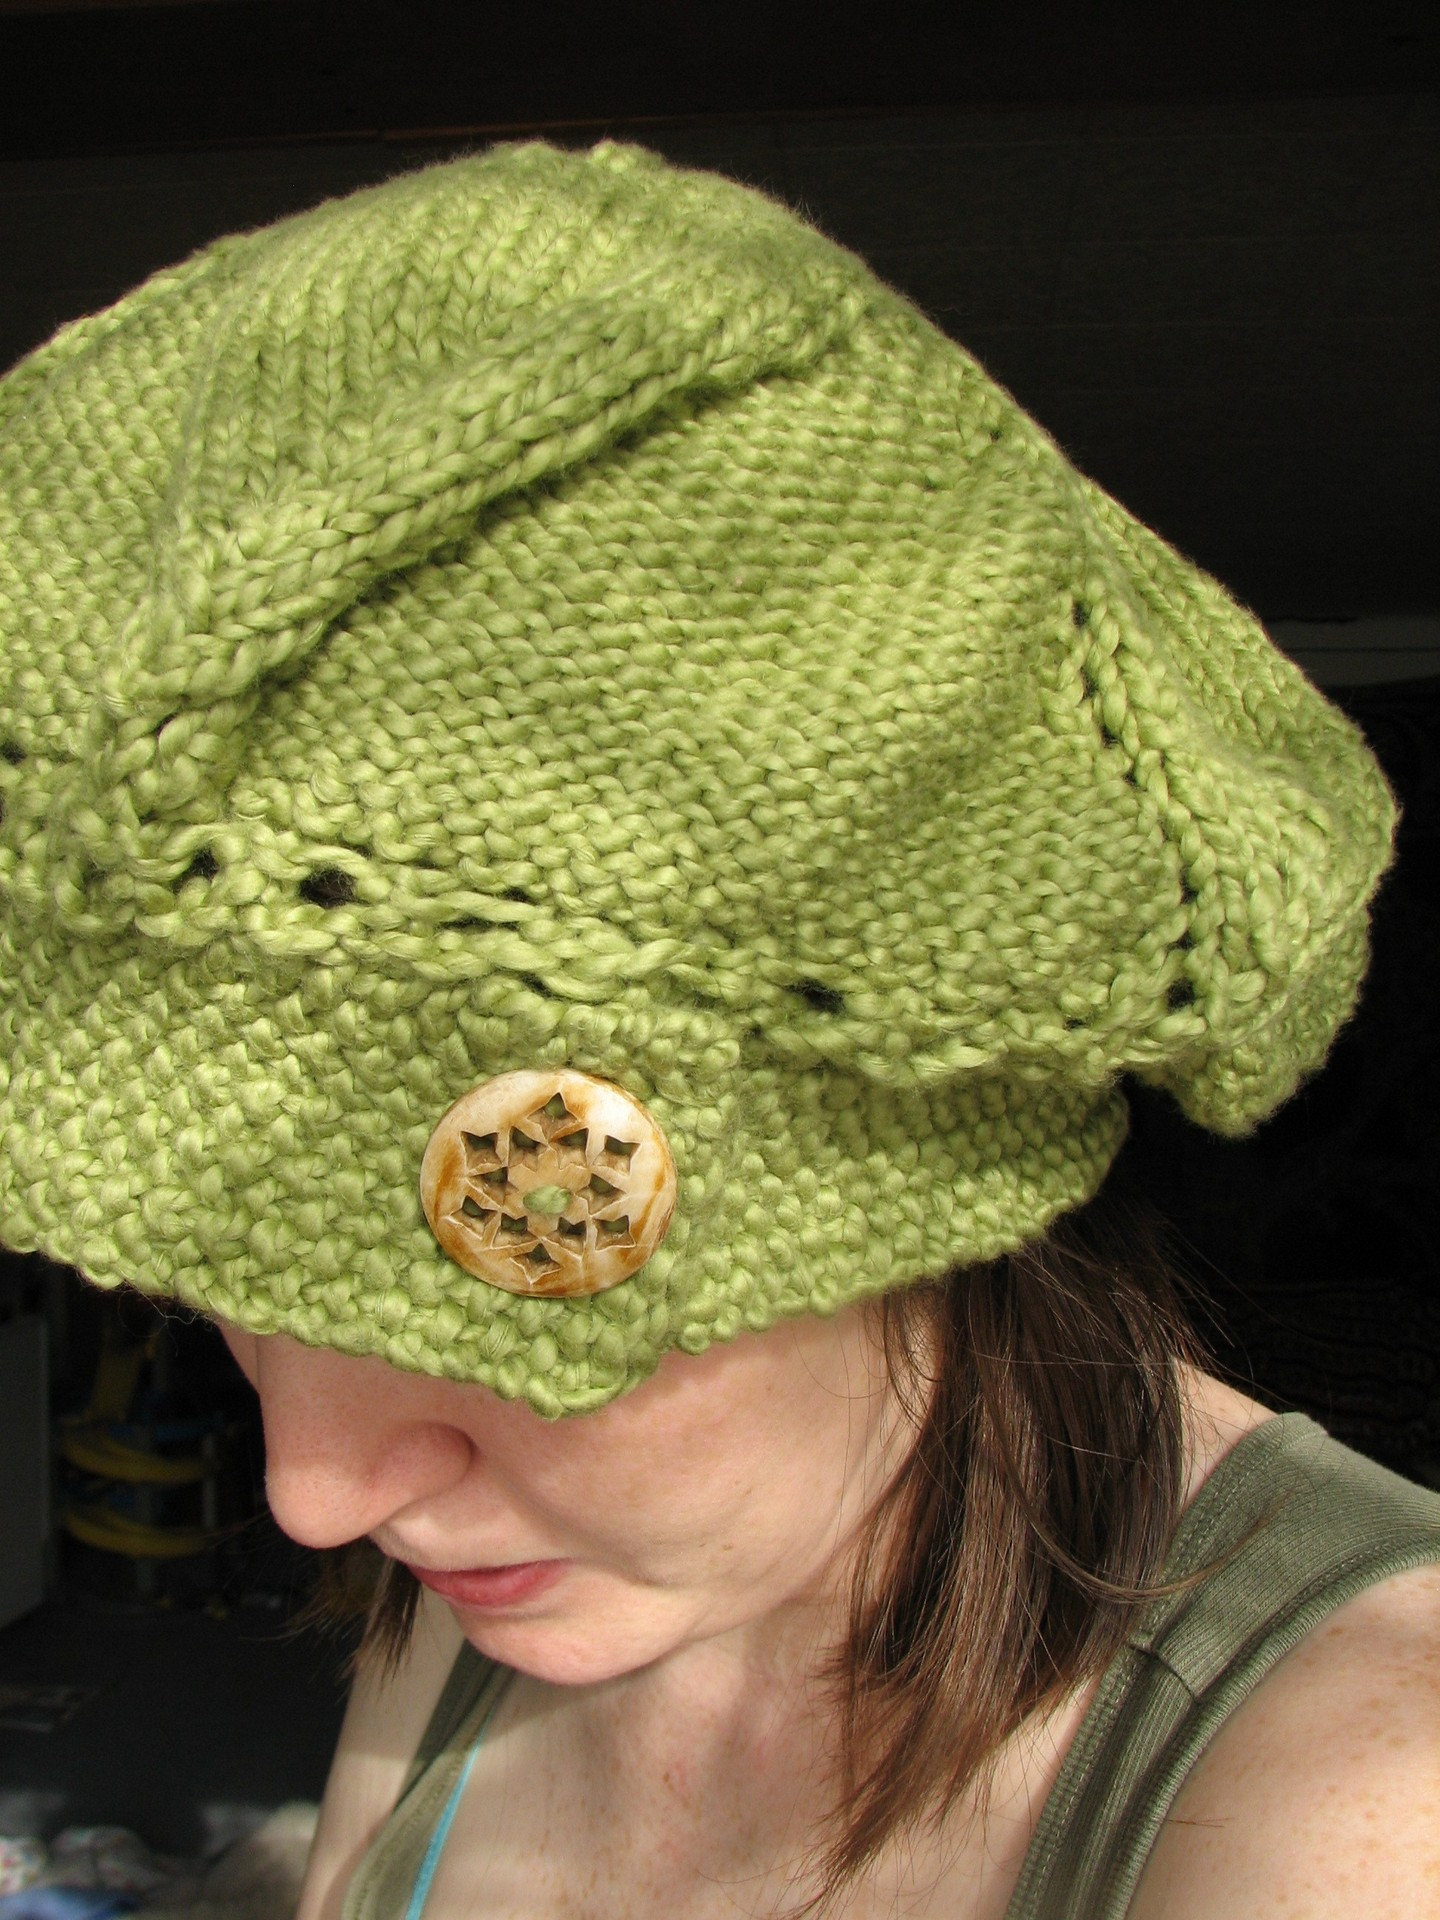 Knitting Images Hd : Knitting images a hat called verity hd wallpaper and